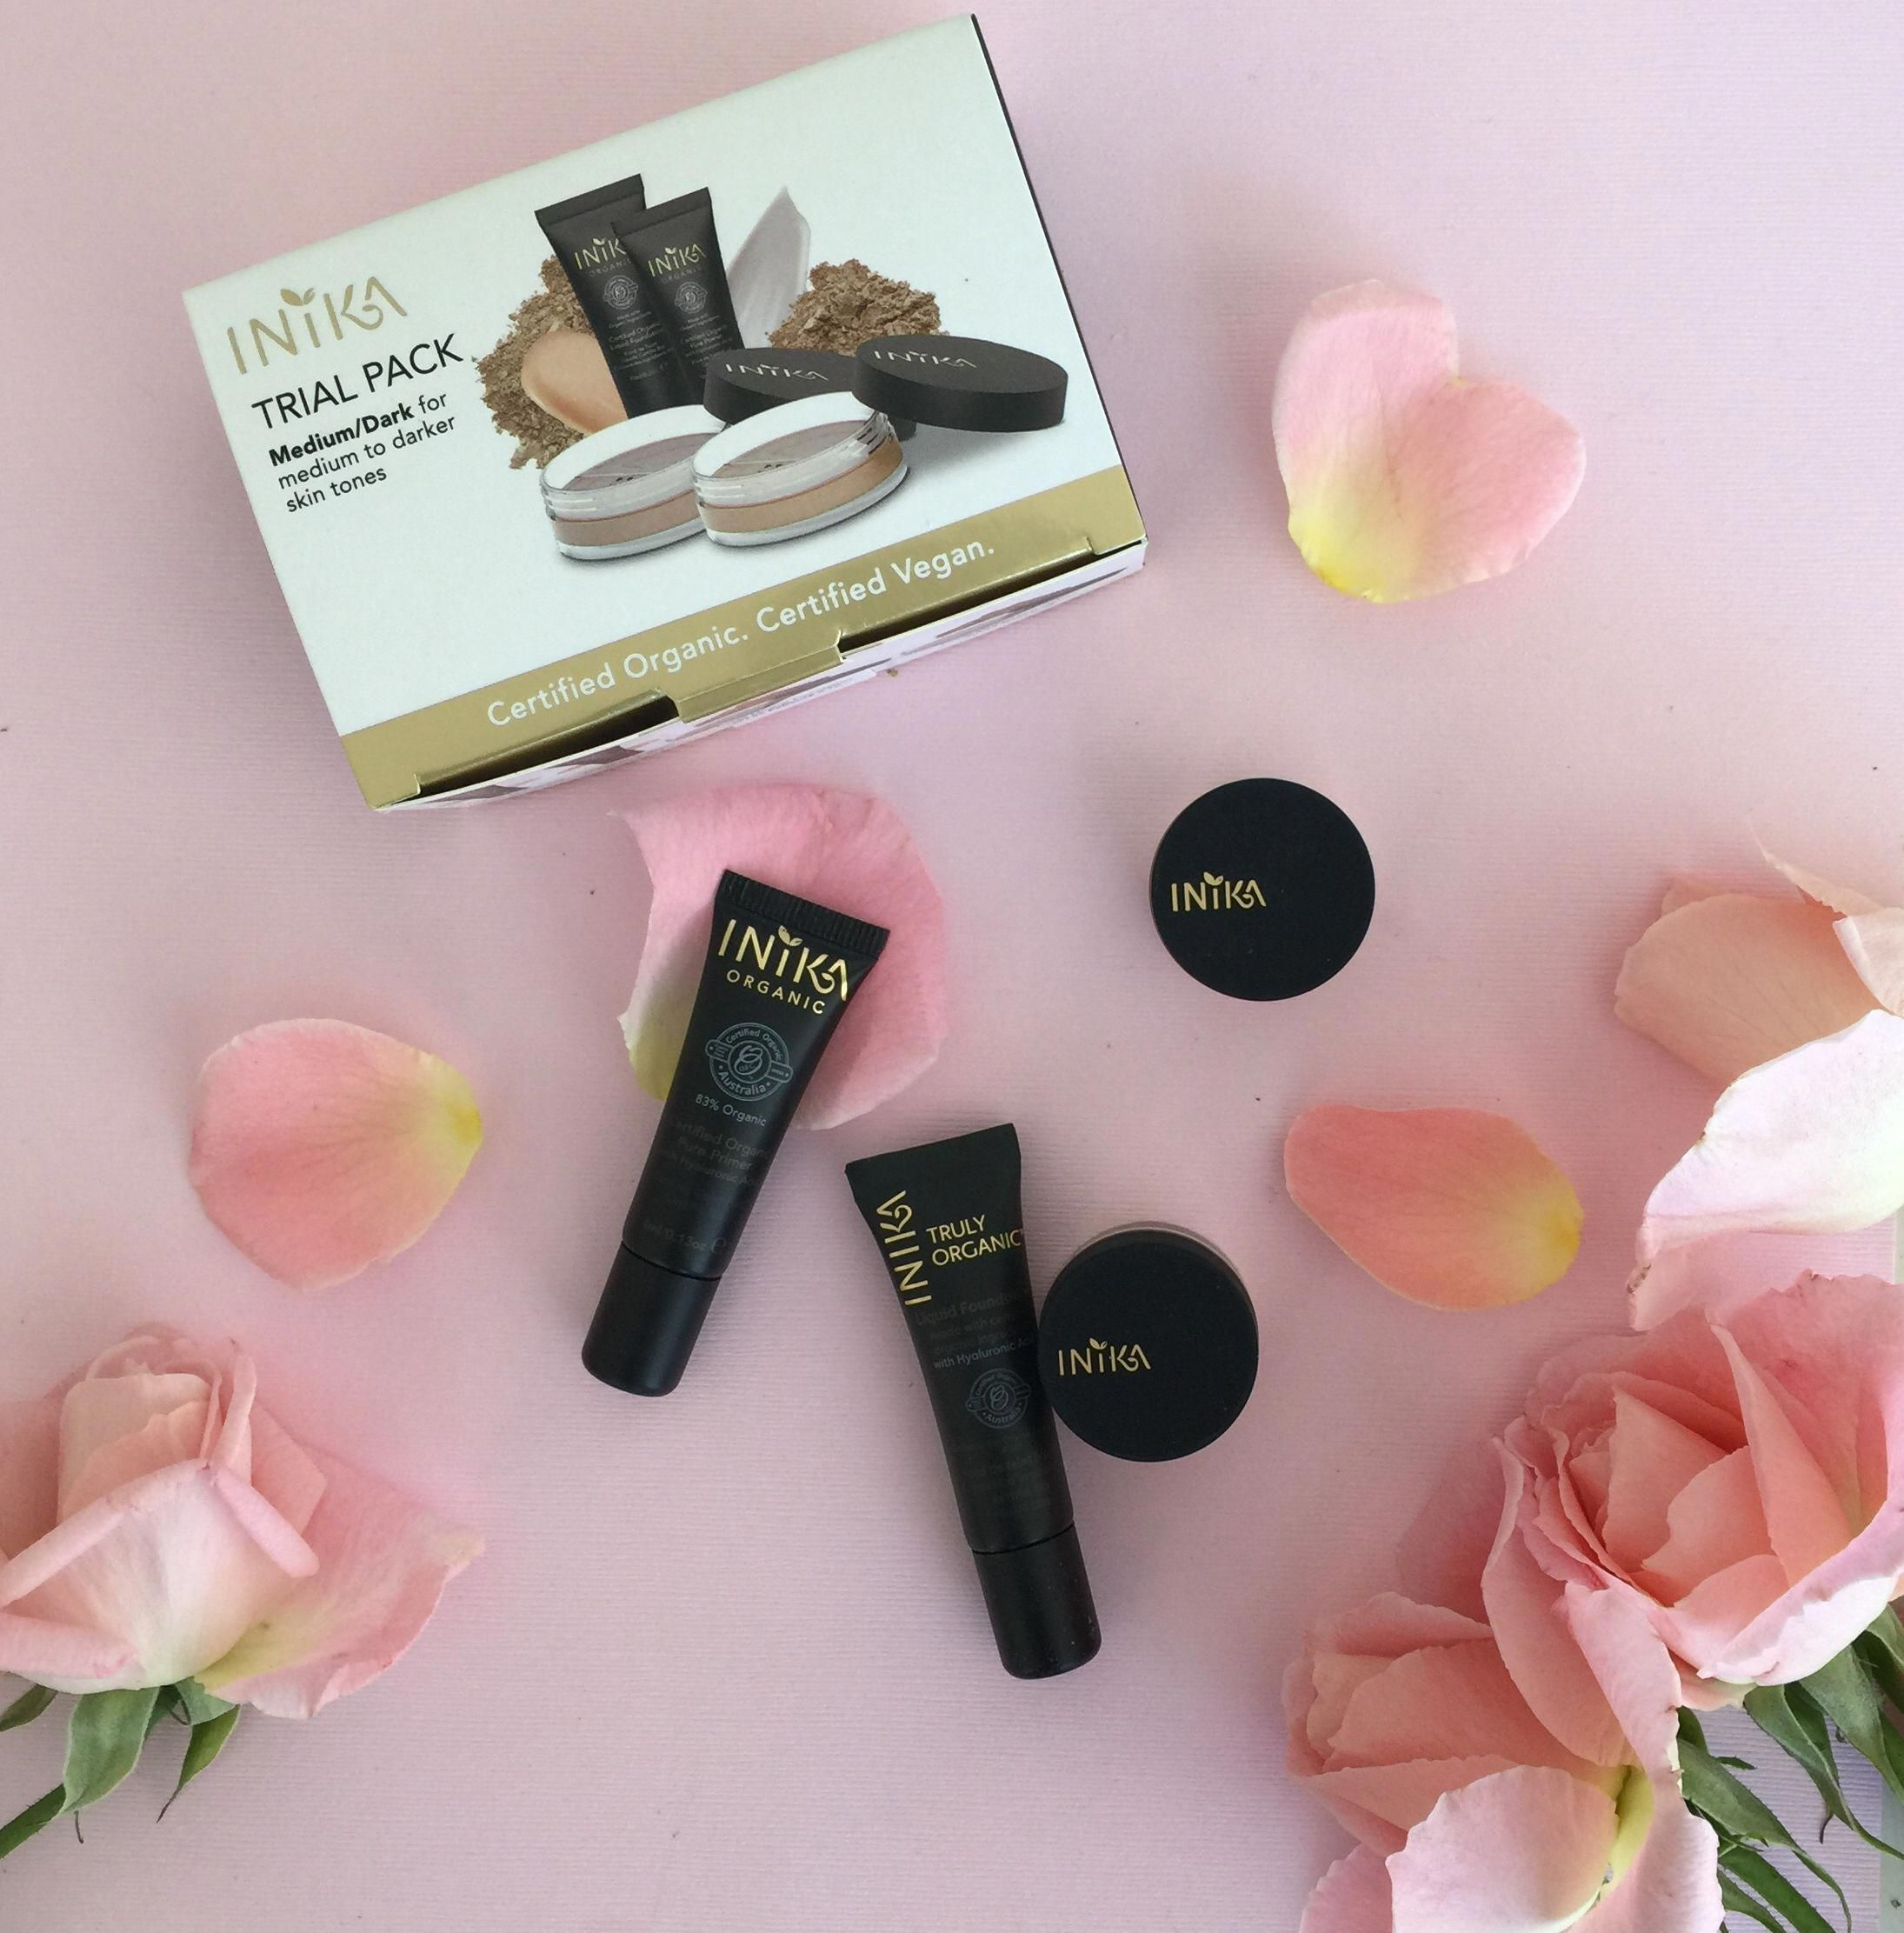 Genius Inika Organic Trial Kits A Week S Worth Of Makeup To Play With And Find Your Shade Too Tooface Organic Makeup Makeup Trial Organic Liquid Foundation